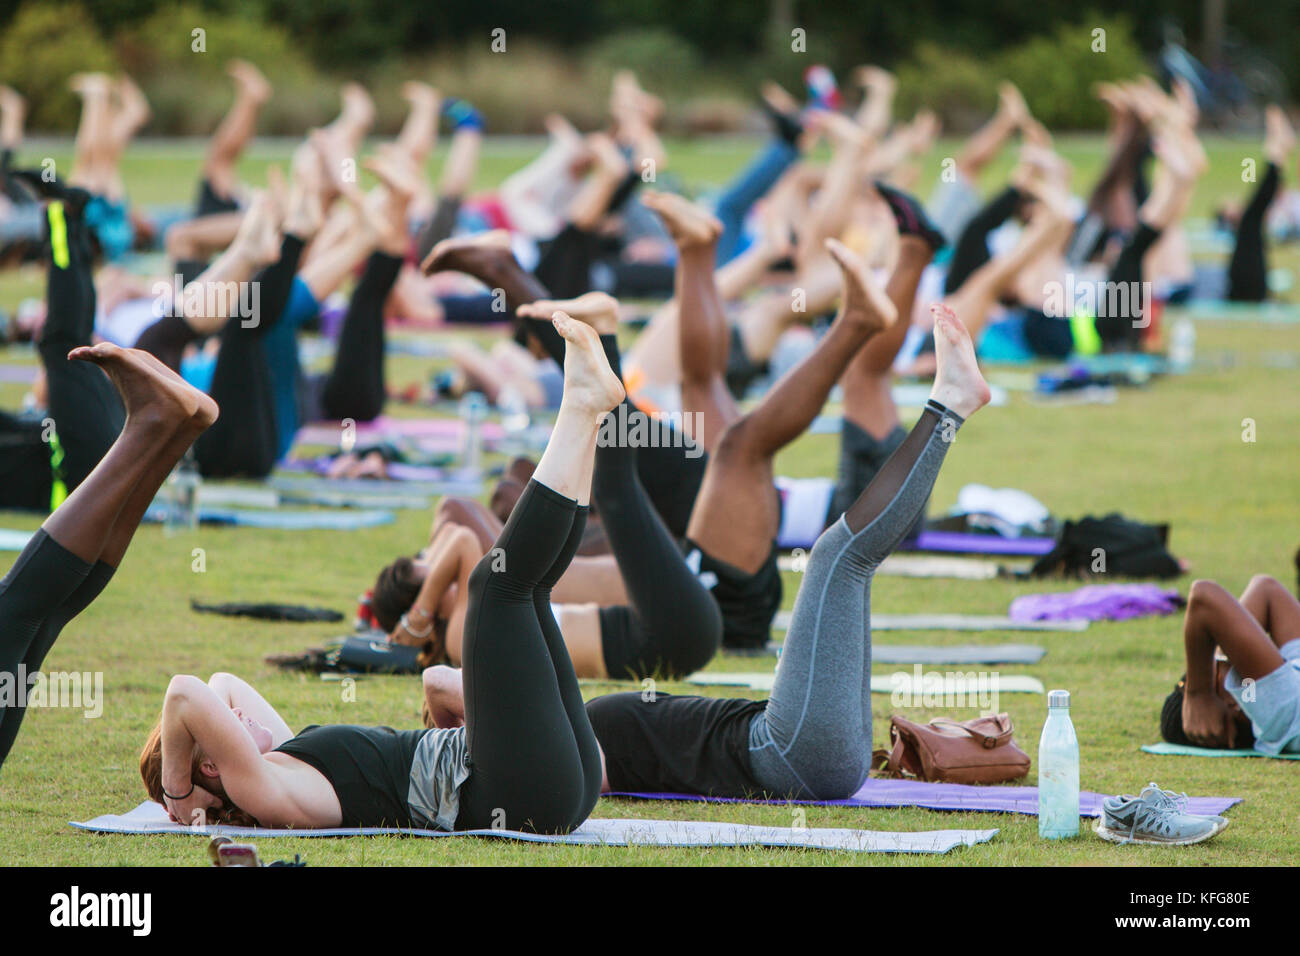 Atlanta, GA, USA - July 2, 2017:  Dozens of people do a yoga pose lying on their backs as they take part in a free - Stock Image